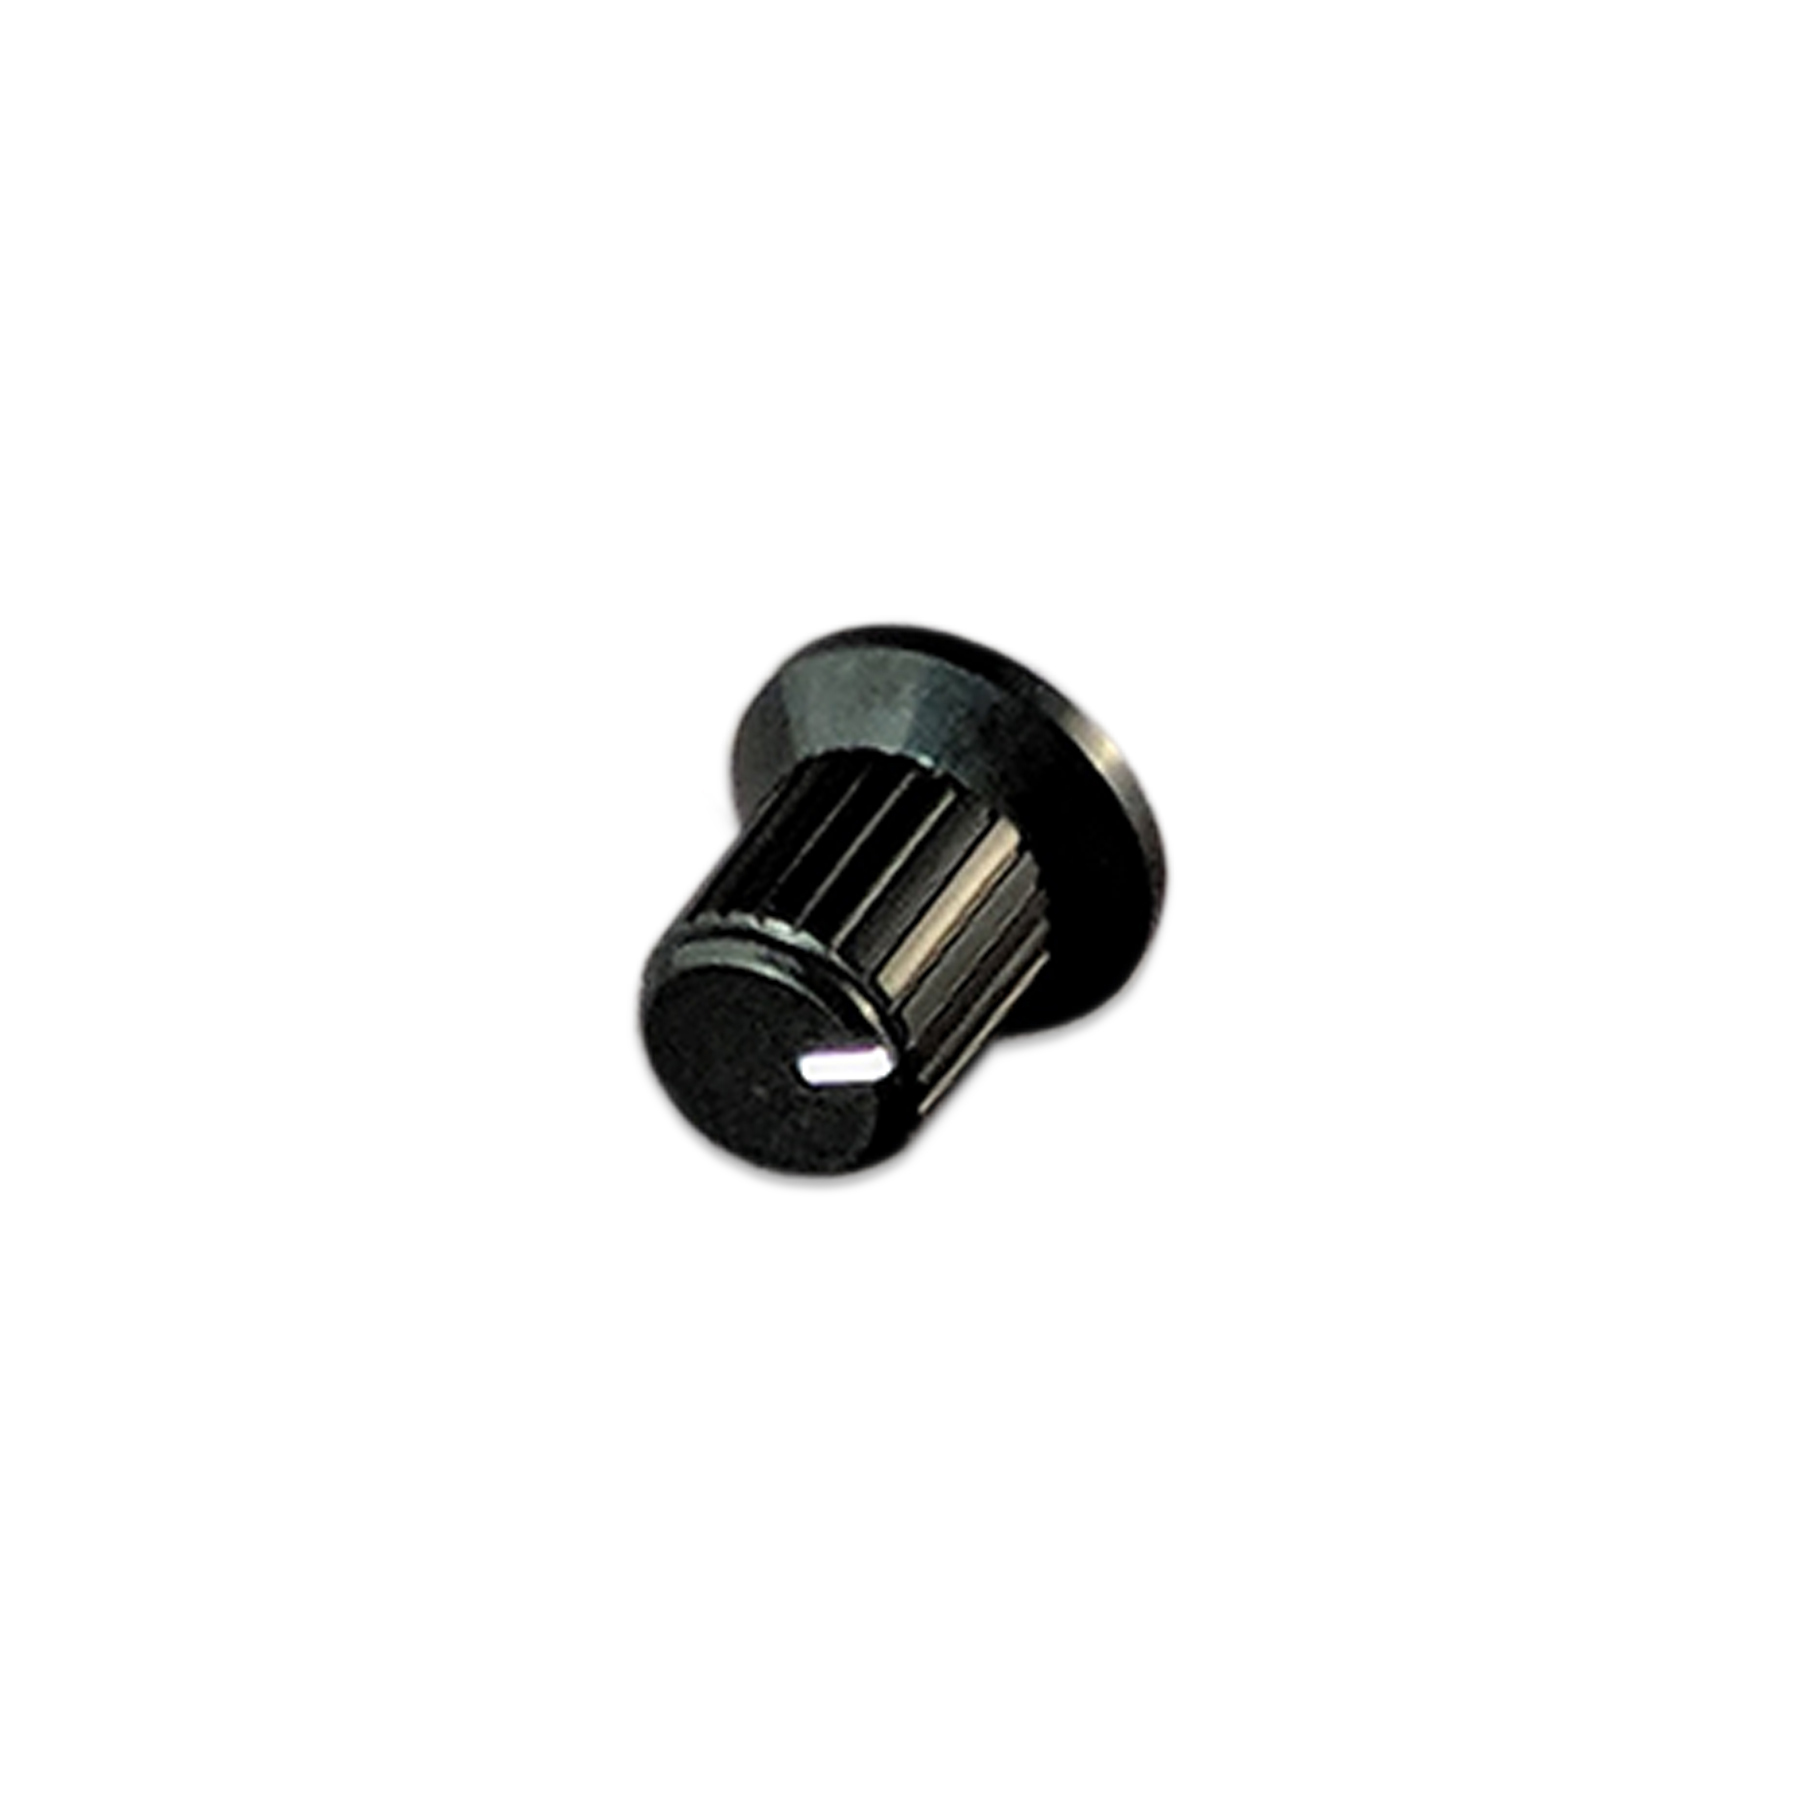 Black Plastic Knob, 1/4 in Shaft, 18 teeth